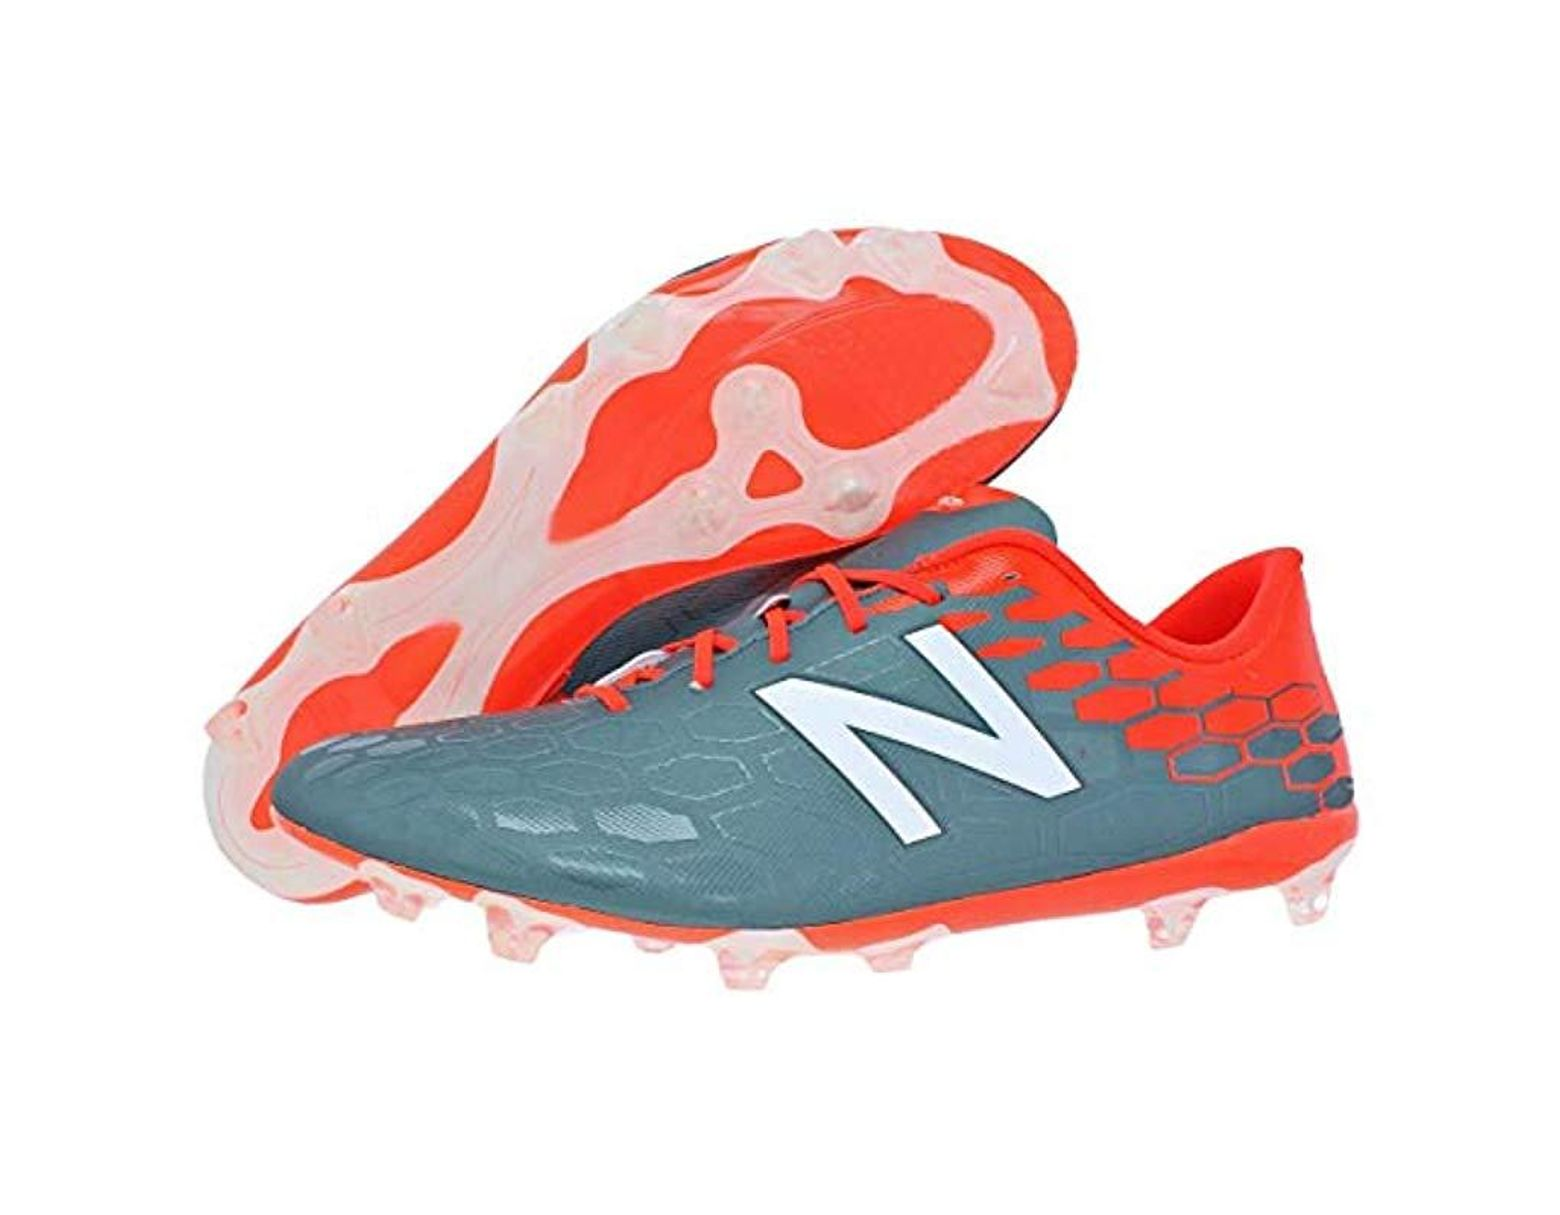 8981797d8bae3 New Balance Visaro 2.0 Control Fg Football Boots in Blue for Men - Lyst